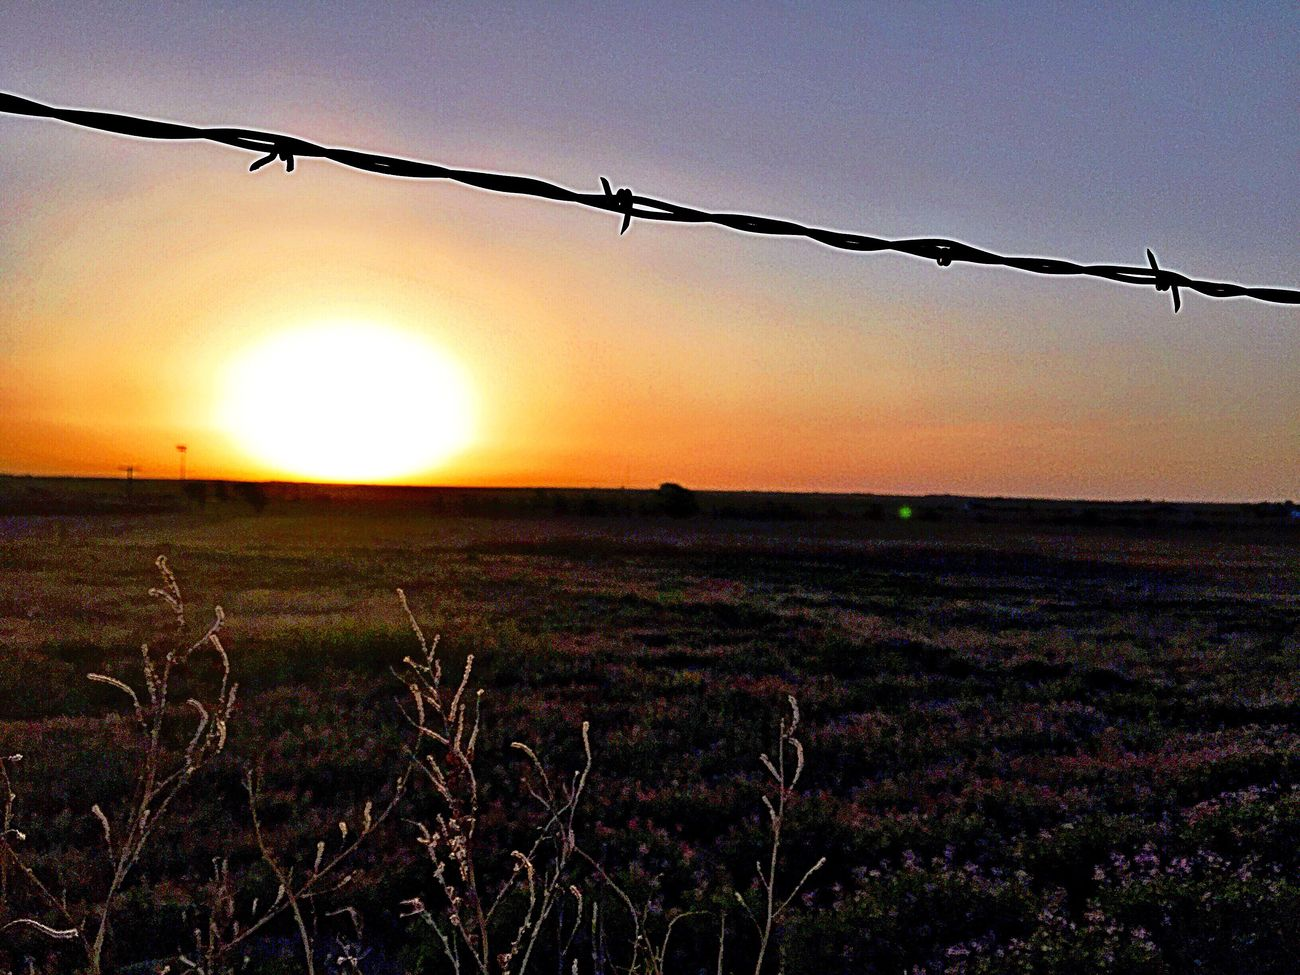 No. 1 of 3 Sunrise http://youtu.be/w4XdnD5c334 Mood And Music Eye4photography  EyeEm Music Lover Showcase March Quietude Landscape_Collection Texas Panhandle EyeEm Nature Lover Naturelovers Texas Landscape Down In The Valley Tadaa Community EyeEm In Living Color We Own The Light Chasing The Sun Untold Stories Sunrise_Collection Love Always ... ~j